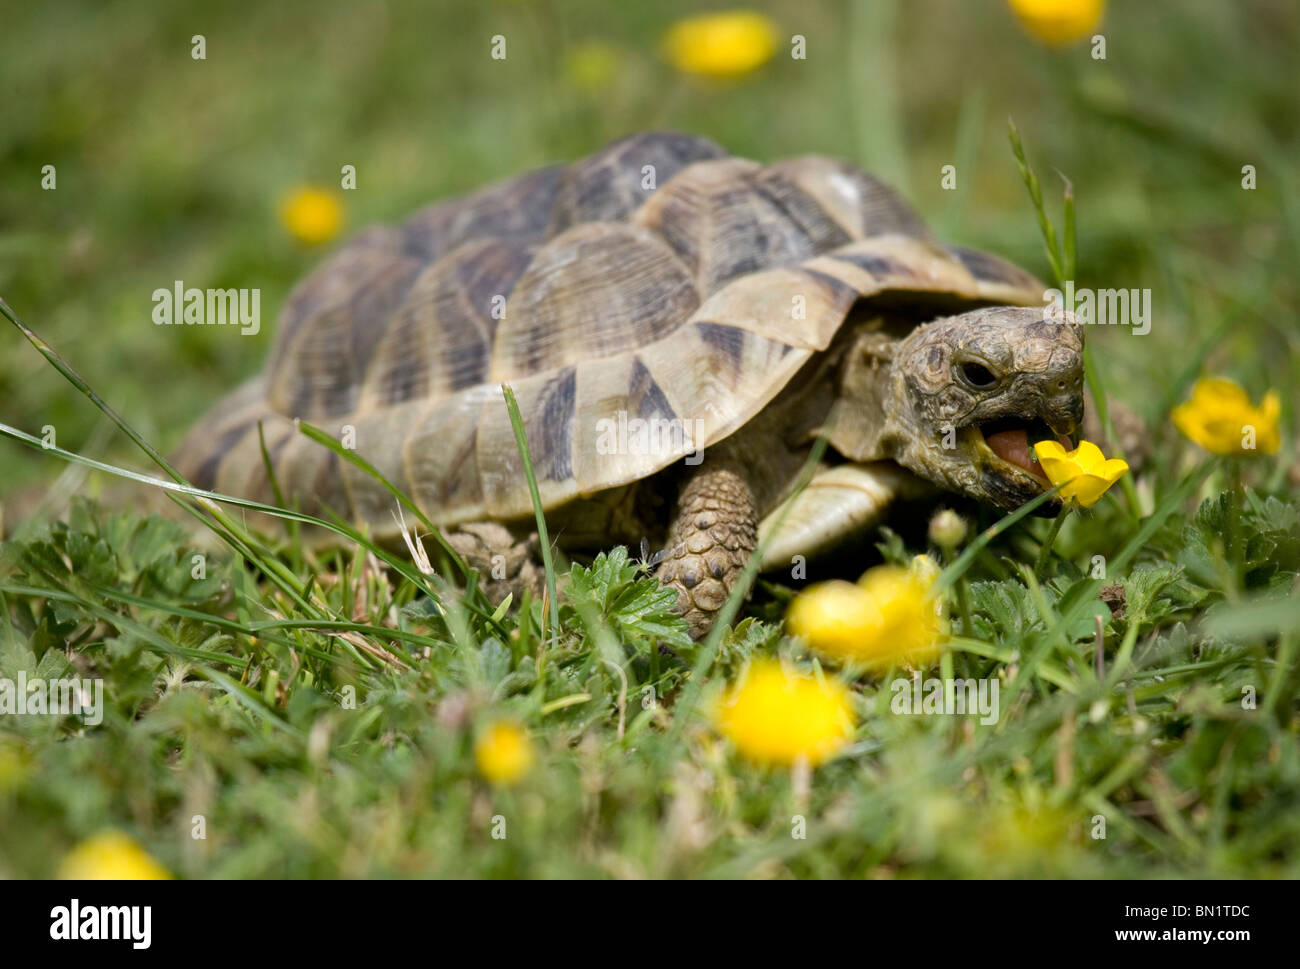 eating and tortoise Find the perfect giant tortoise eating stock photo huge collection, amazing choice, 100+ million high quality, affordable rf and rm images no need to register, buy now.